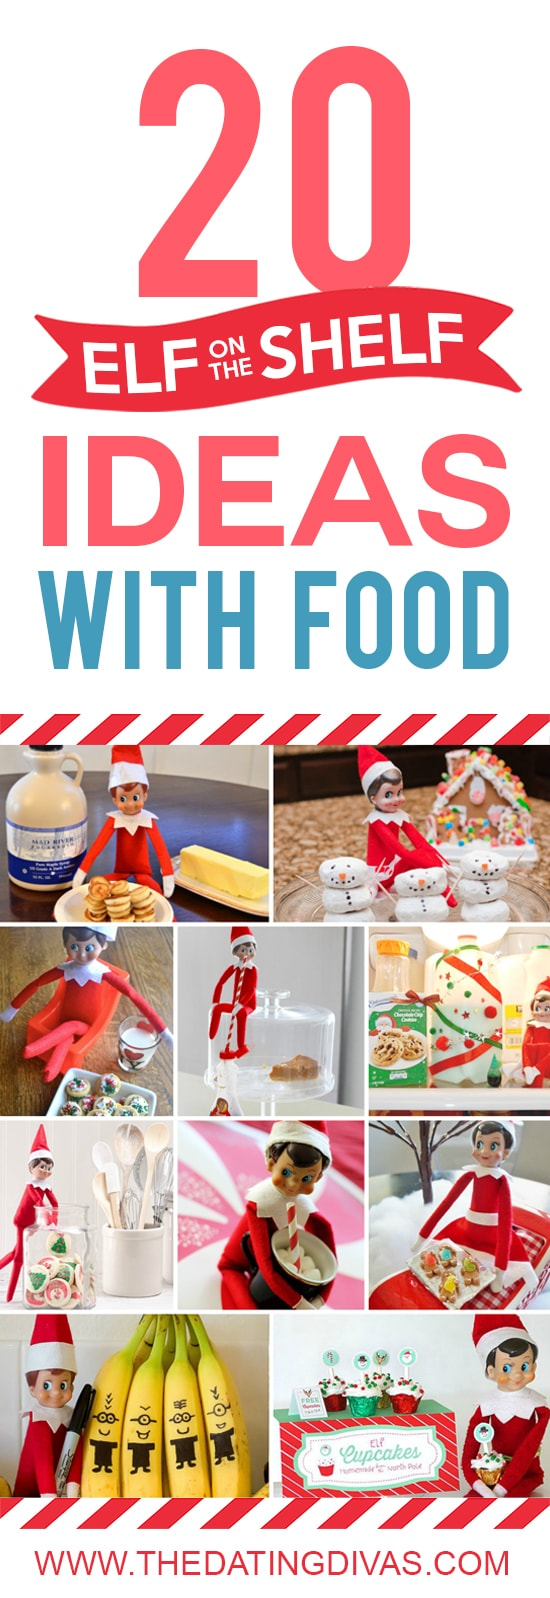 Even MORE Elf on the Shelf ideas.